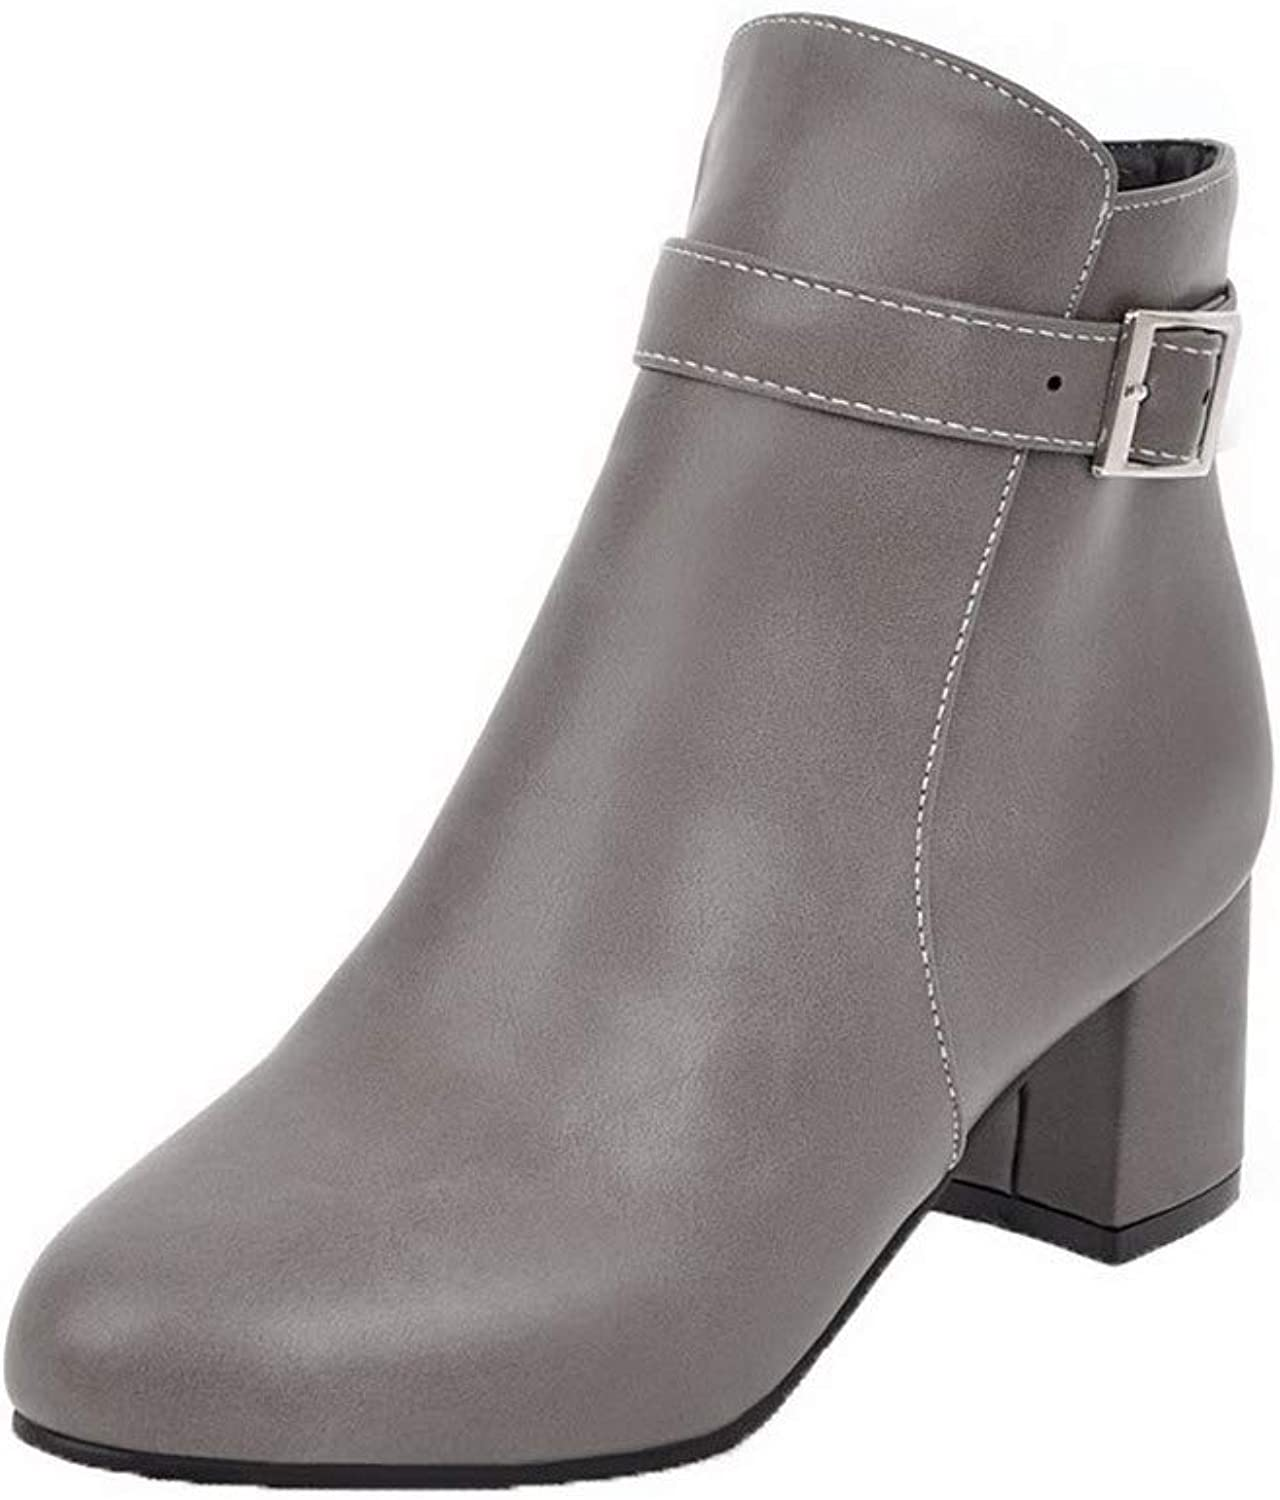 WeenFashion Women's Round-Toe Ankle-High Kitten-Heels Solid Pu Boots, AMGXX111150